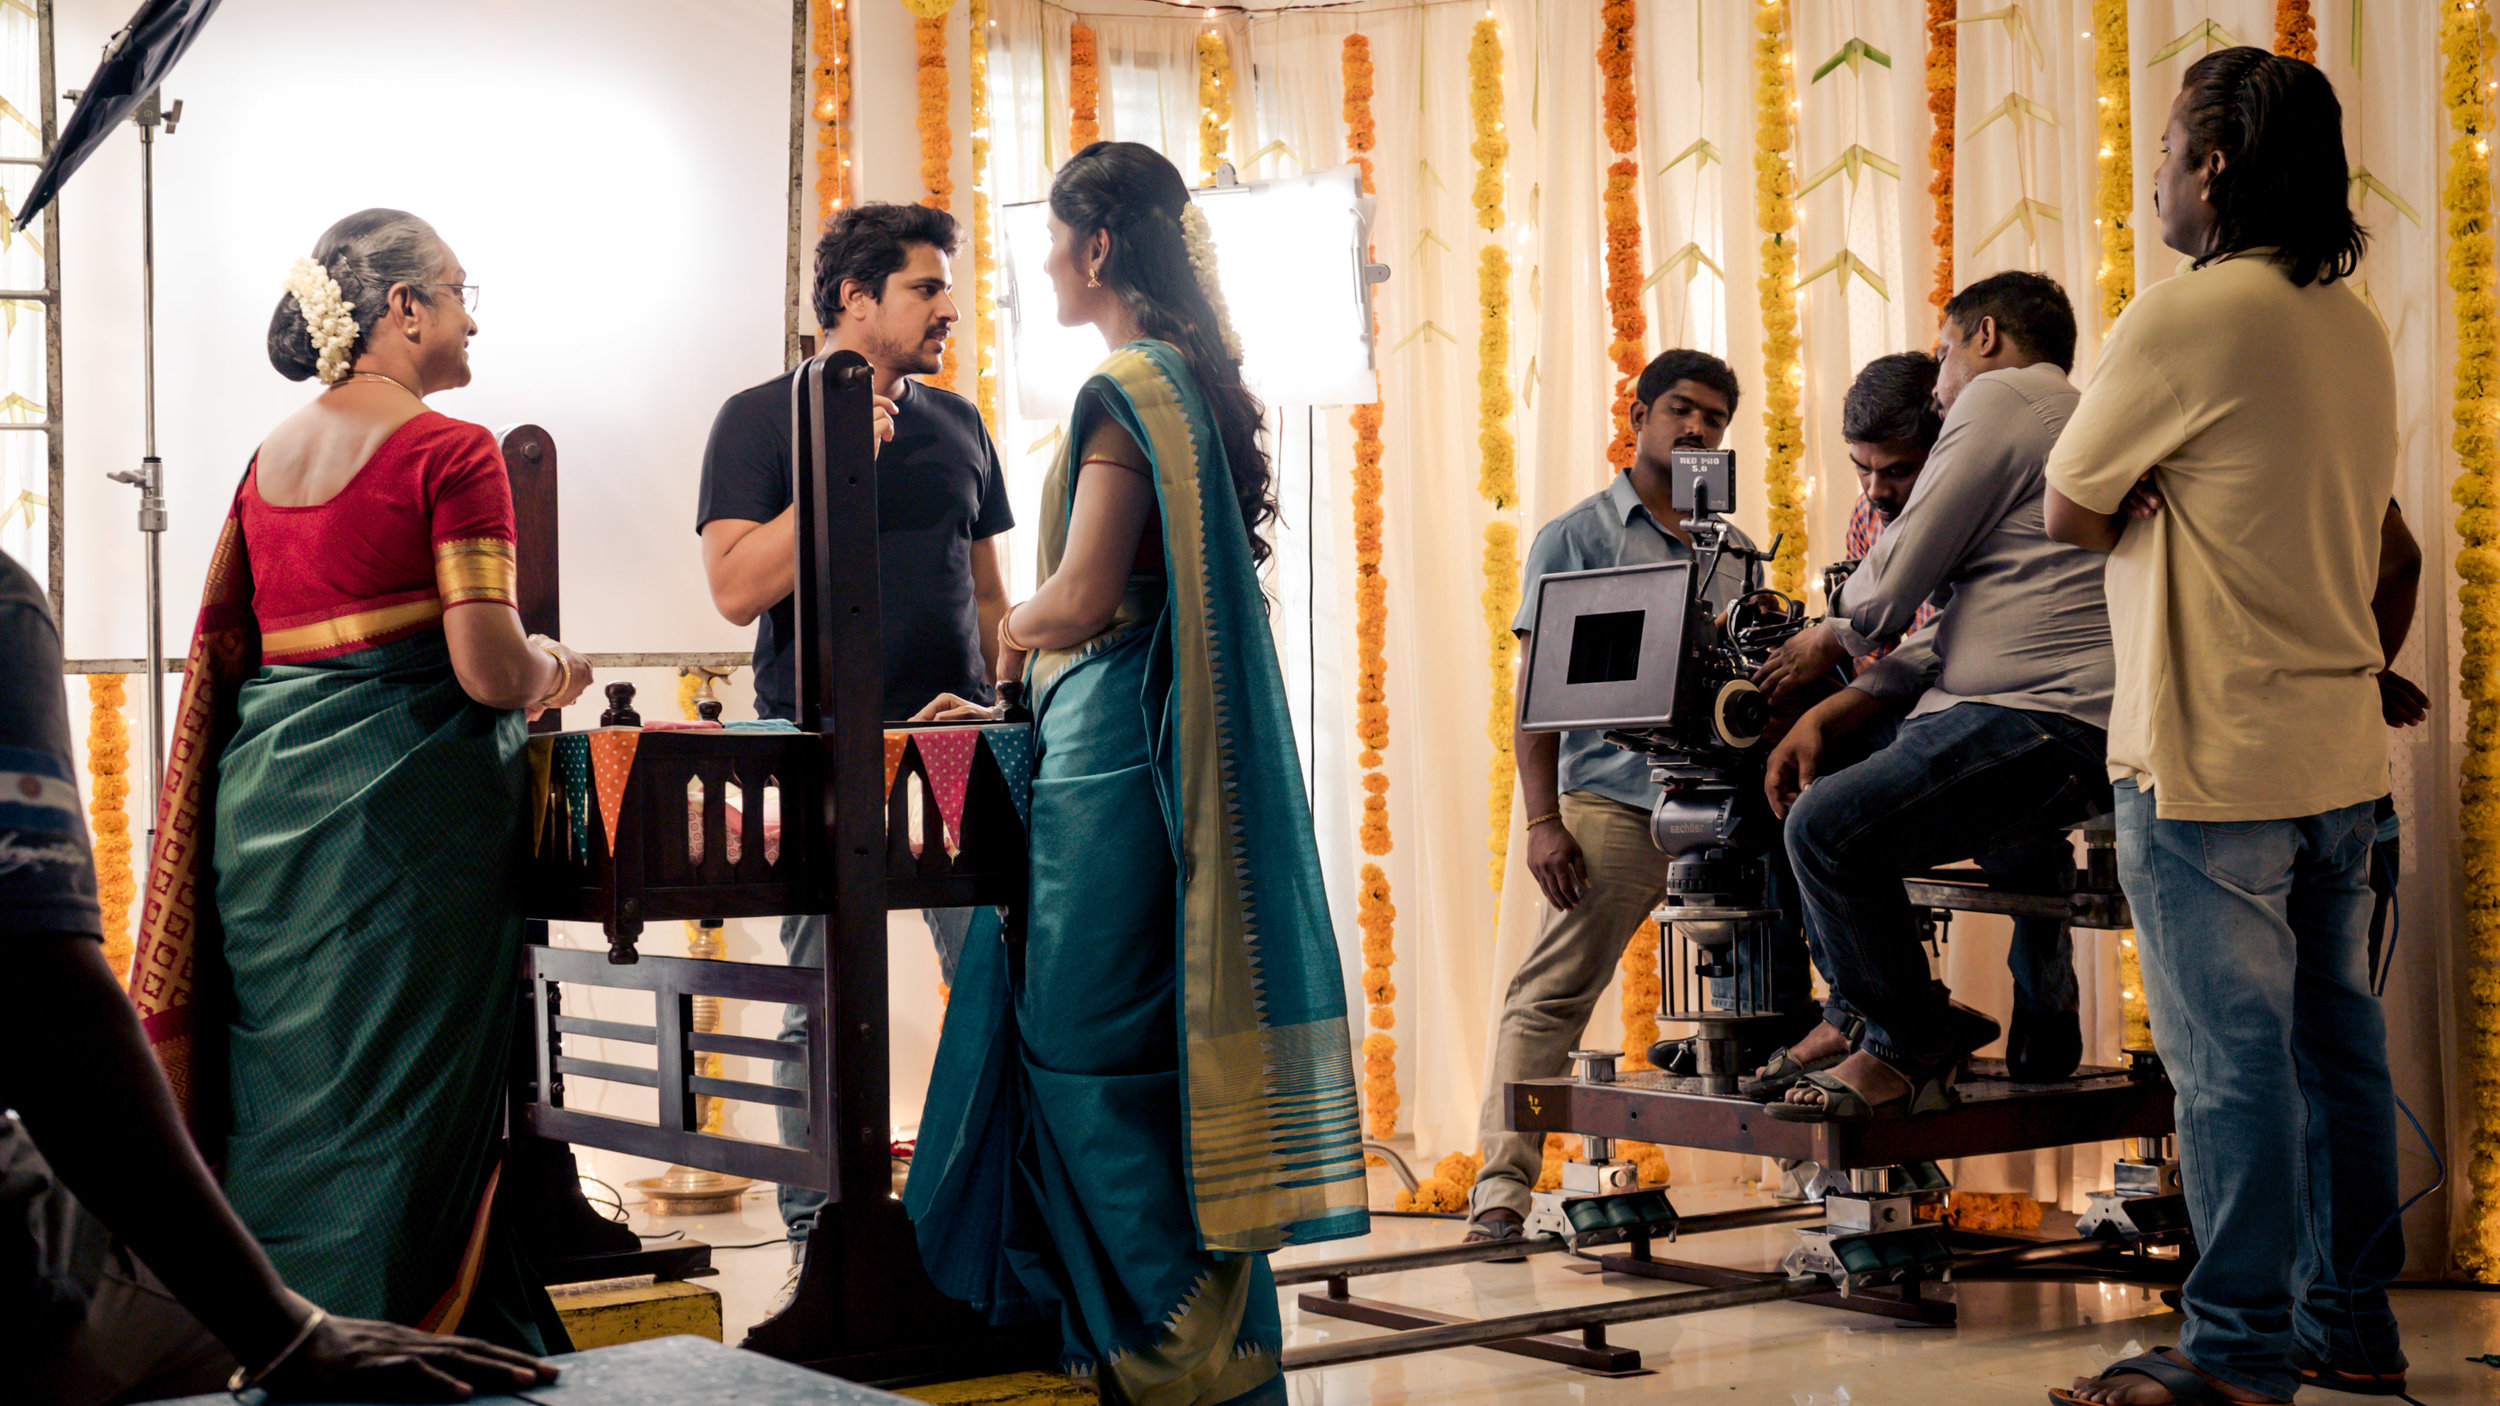 Sahit Anand (our director) is a big fan of camera movements. Especially when it's motivated by an emotion.